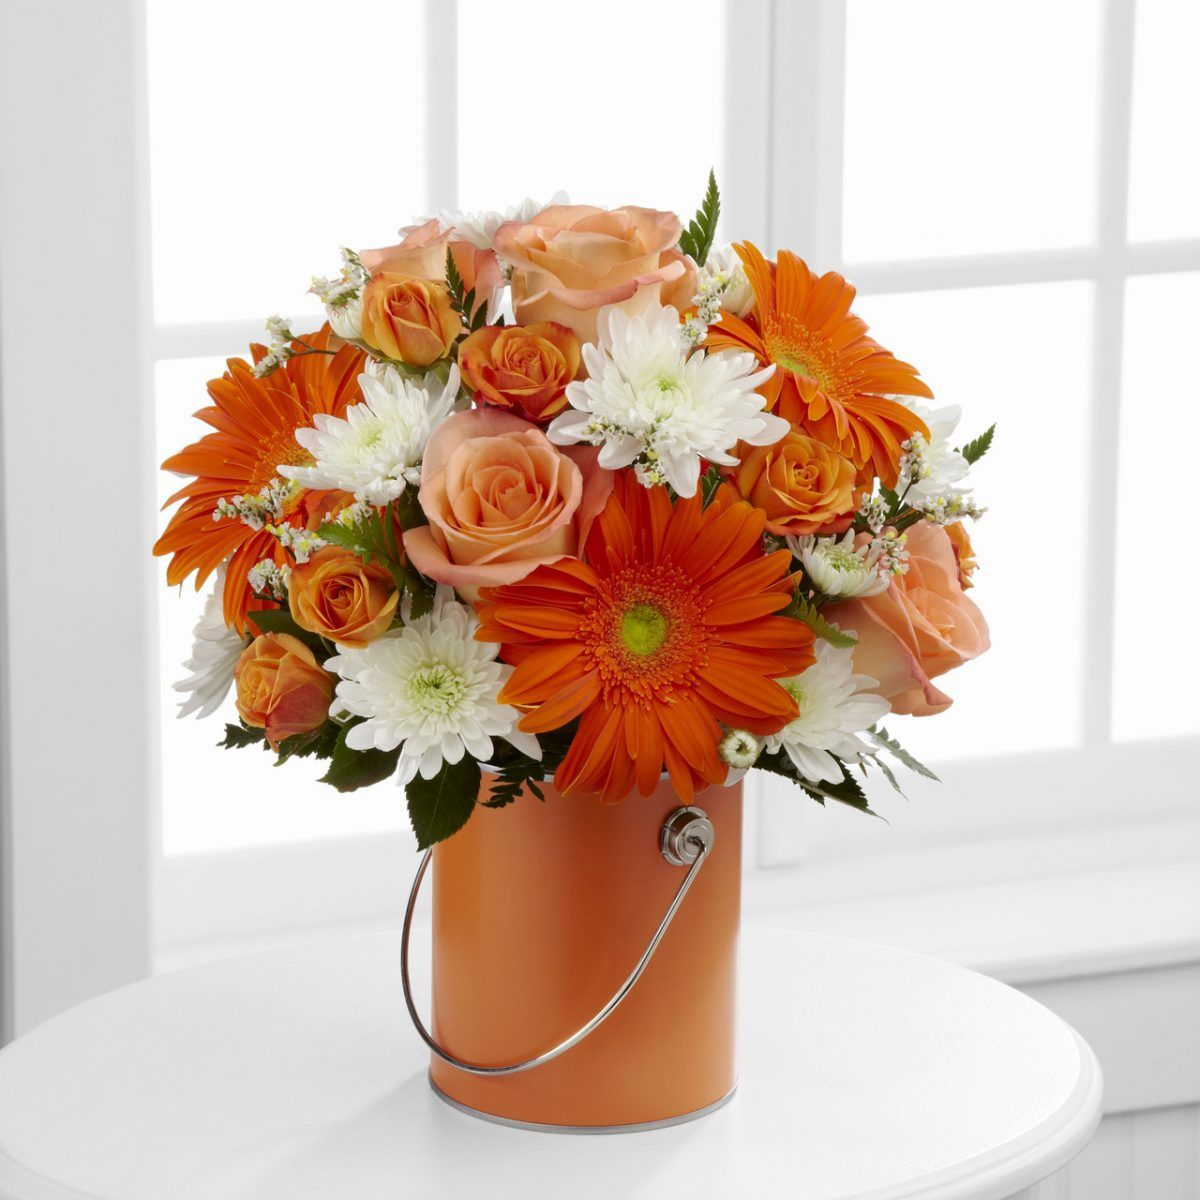 Floral Arrangement adds a classic and beautiful style to your home